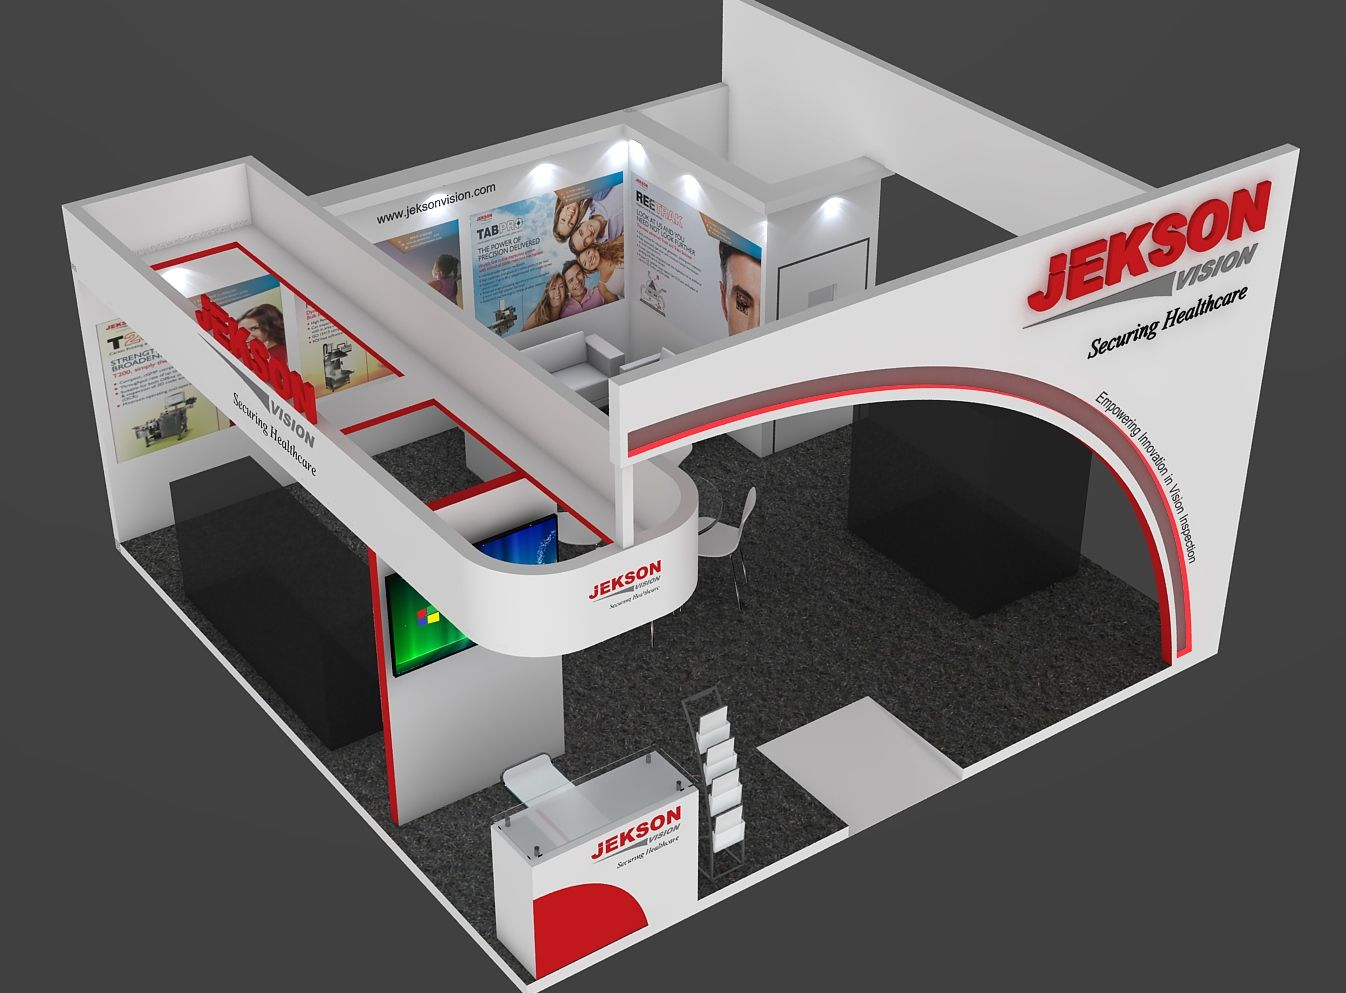 Exhibition Stand Design Egypt : Pin by beyman advertising on exhibition stands in egypt u2013 beyman